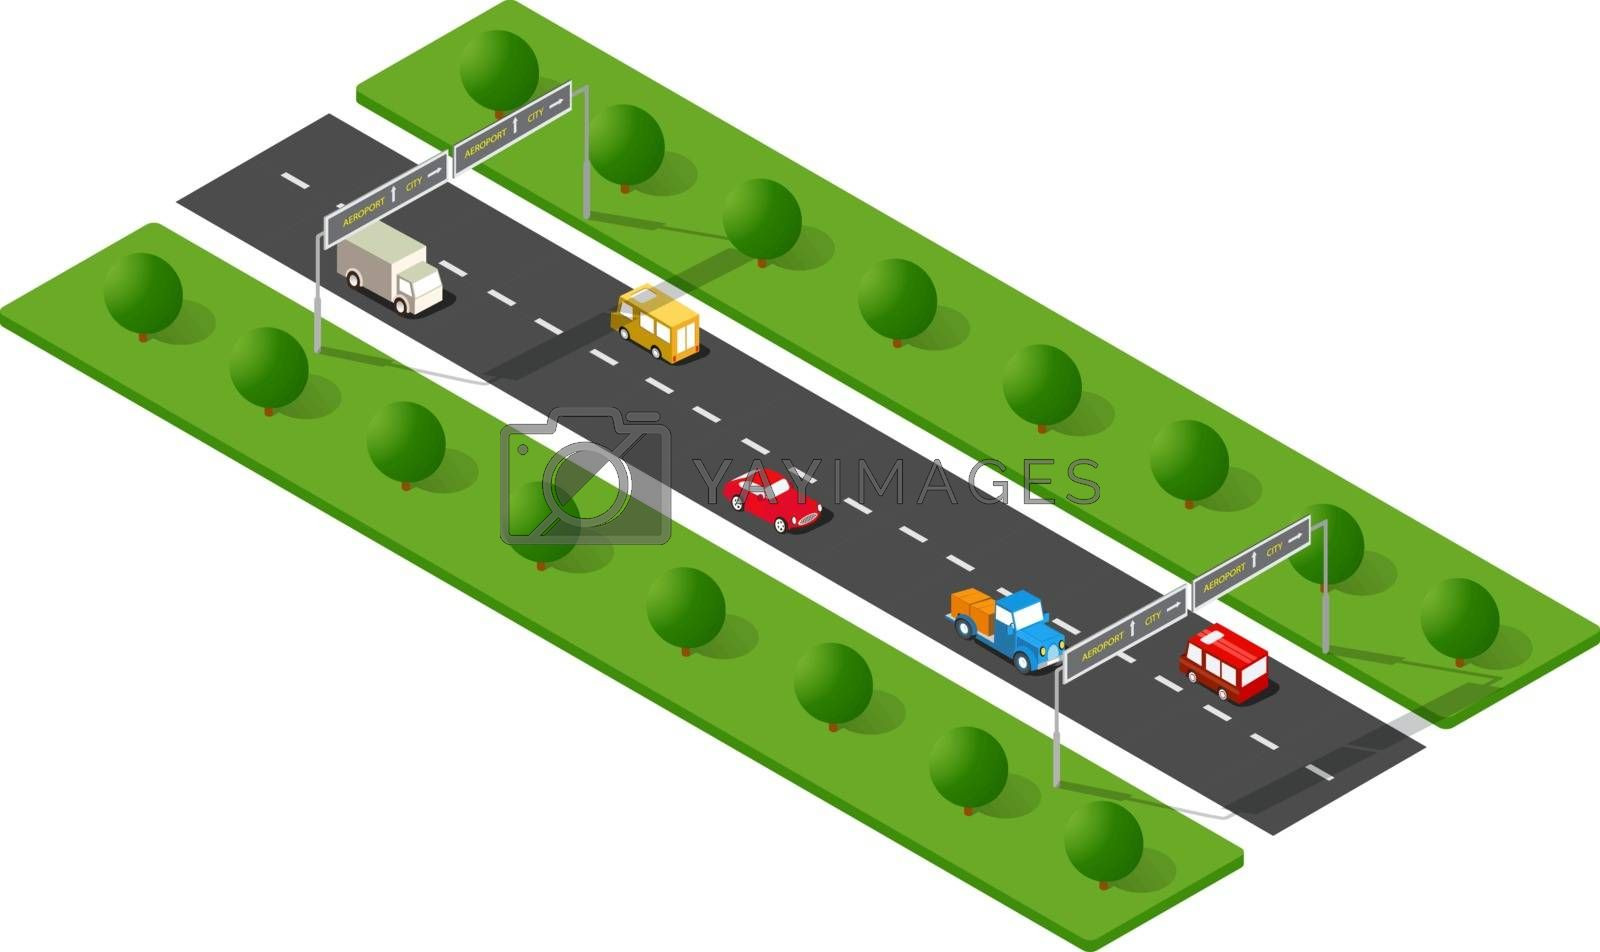 Transport urban road with trees. Isometric view from above on a city transport